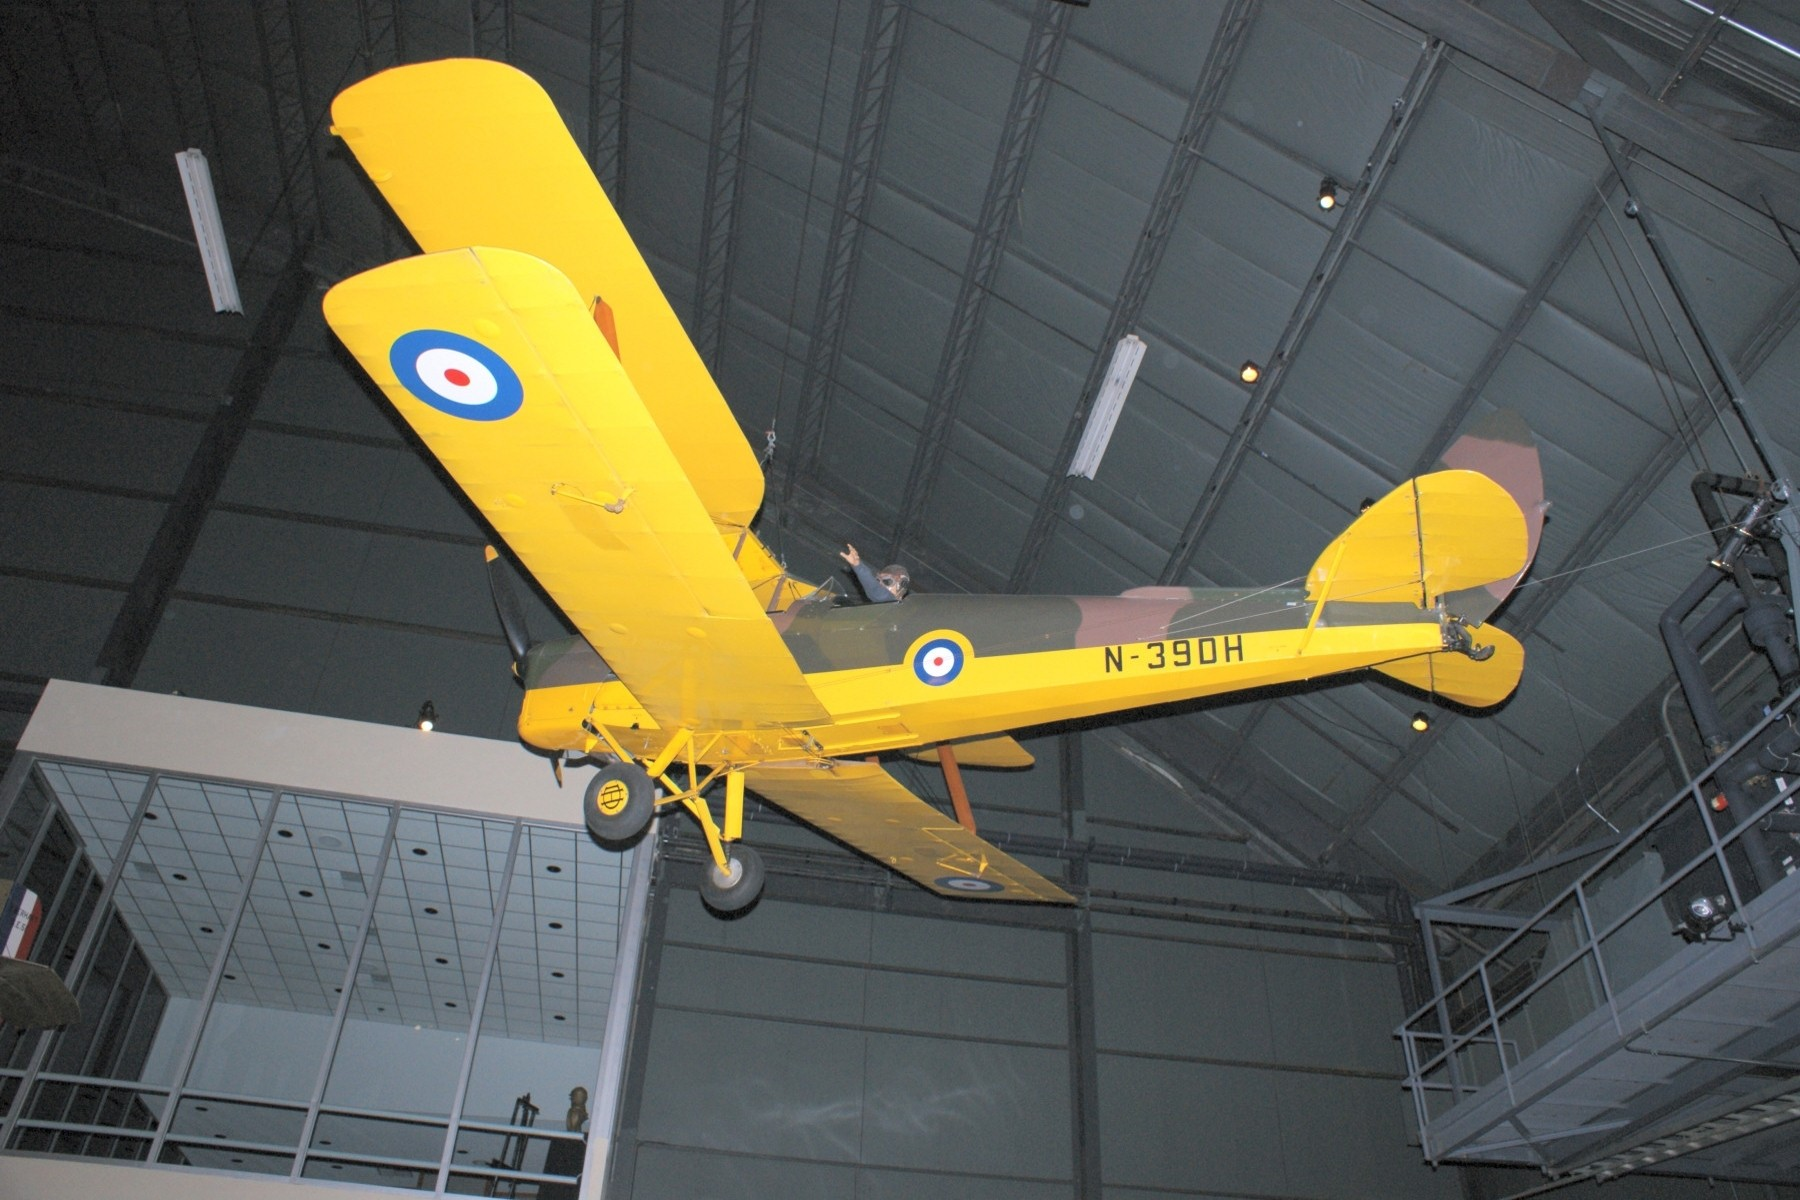 de de Havilland DH.82 Tiger Moth